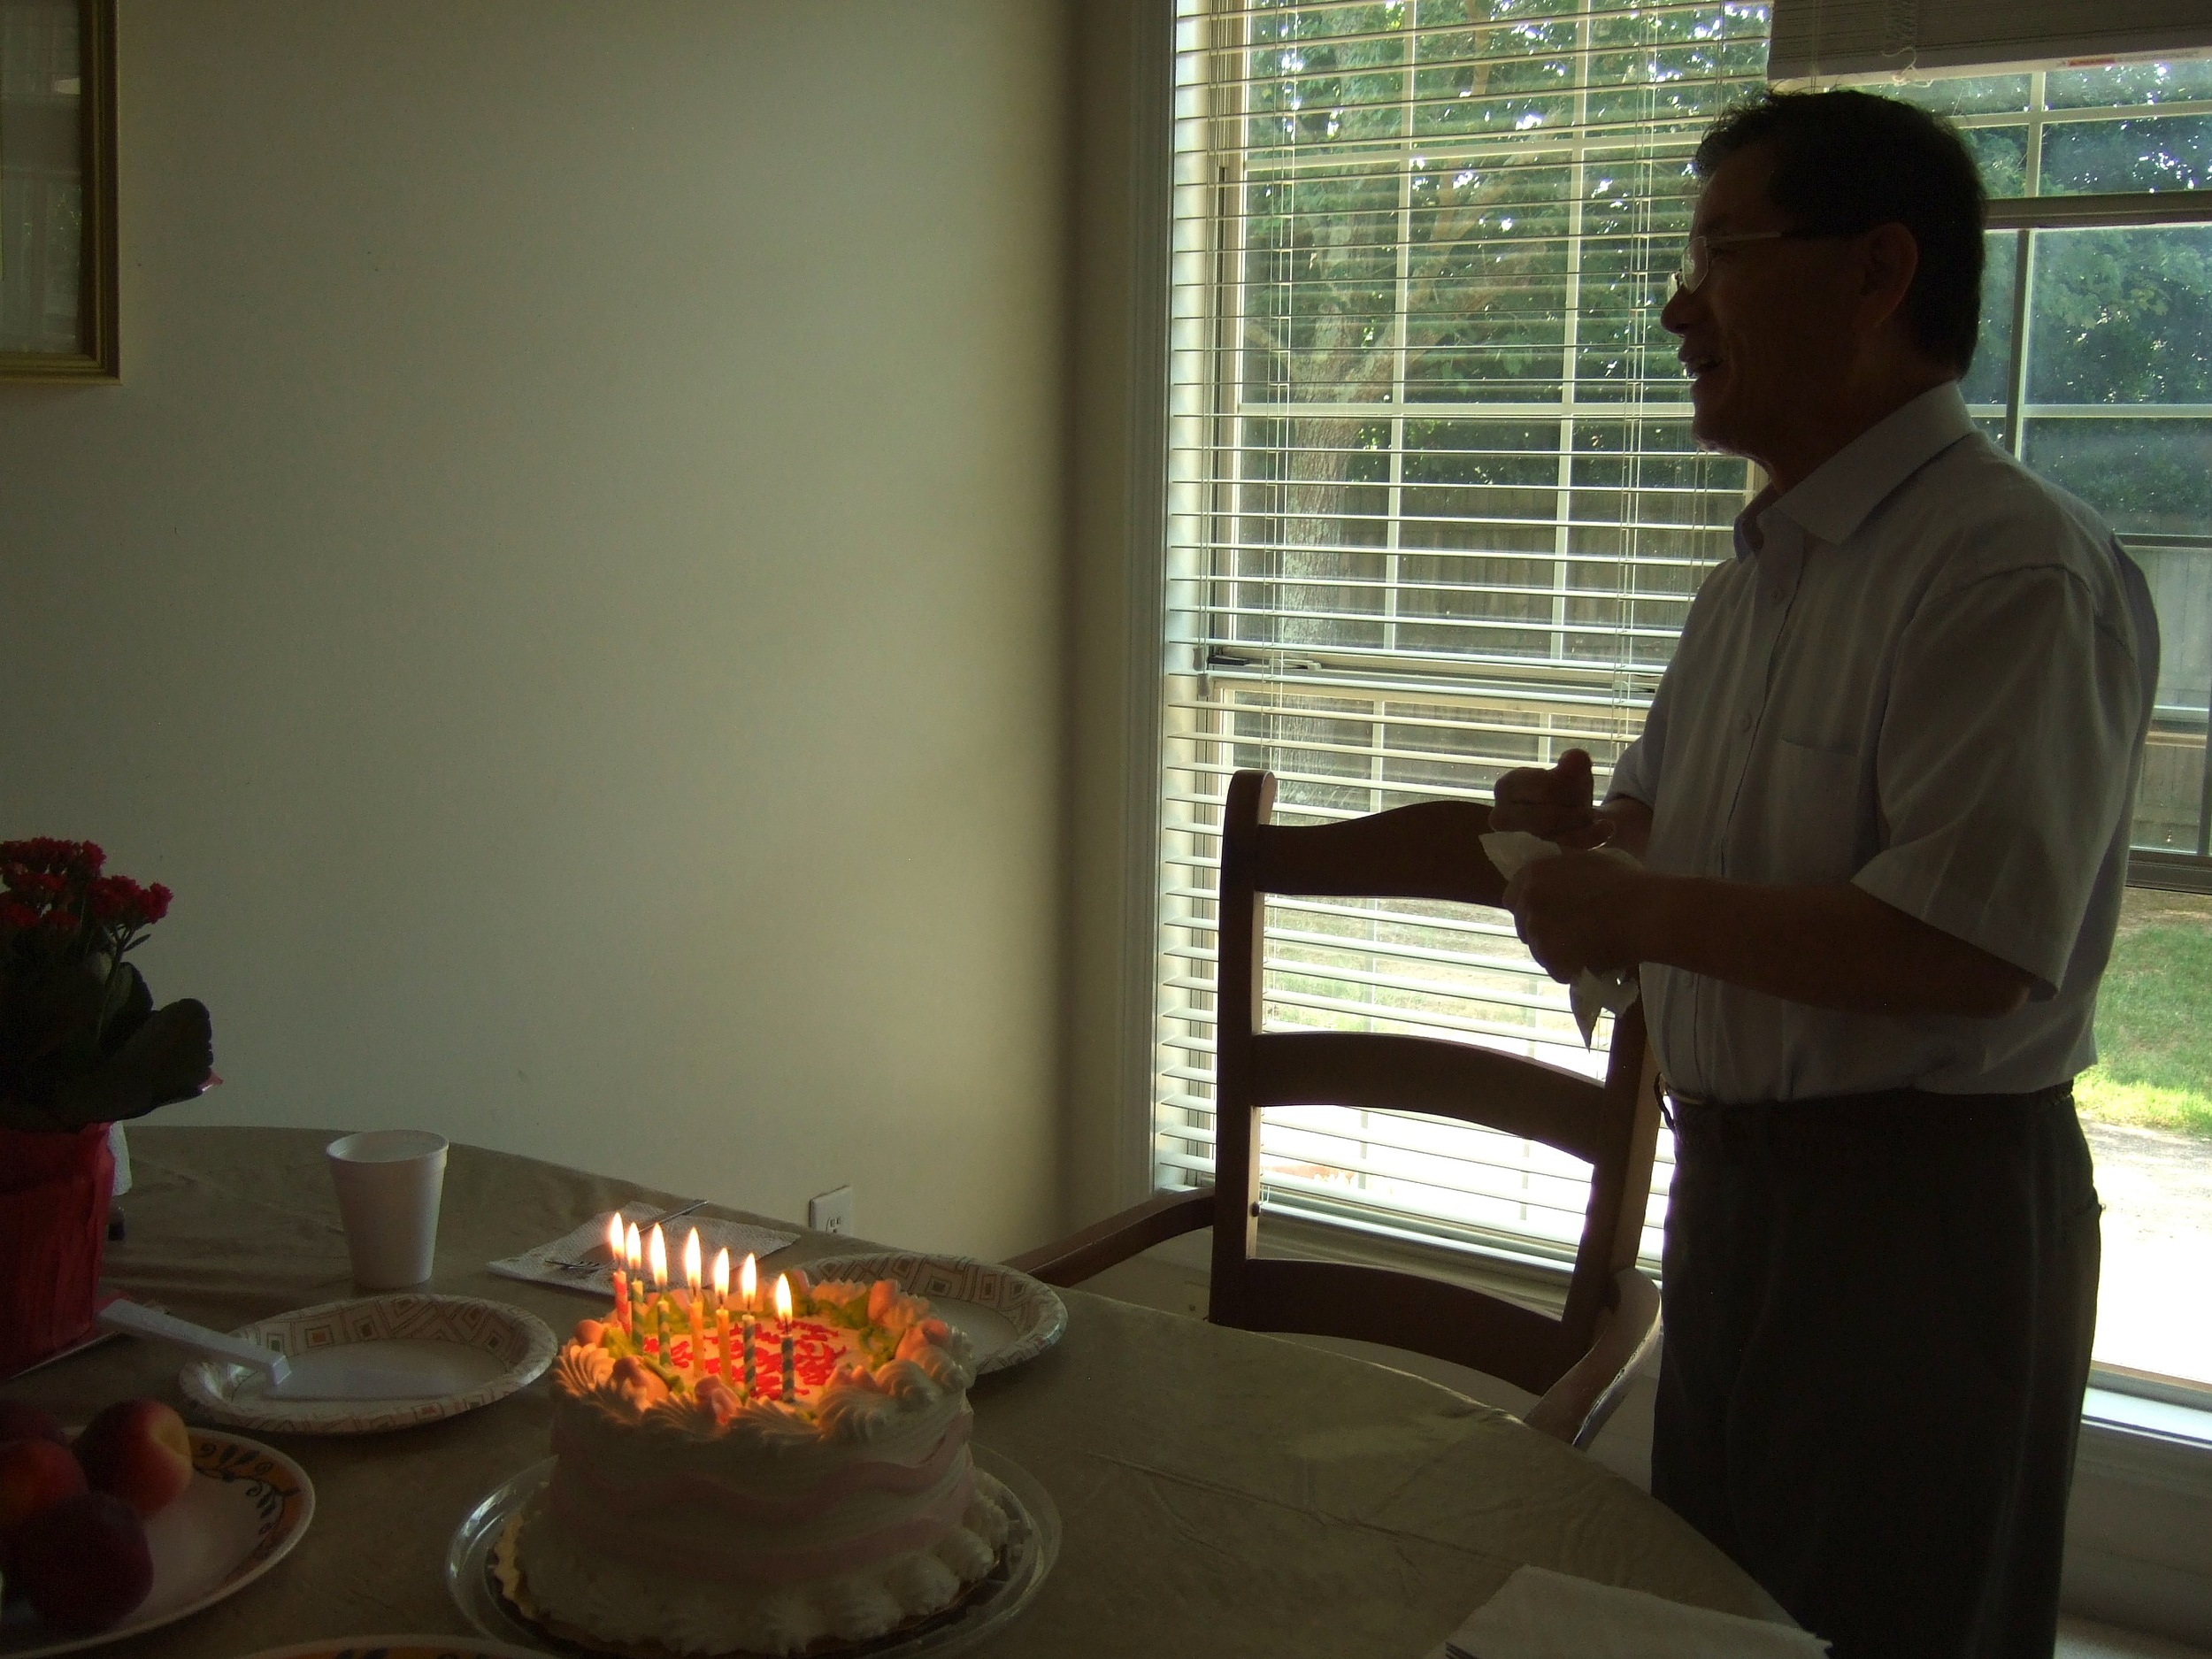 dad_with_lit_cake.jpg